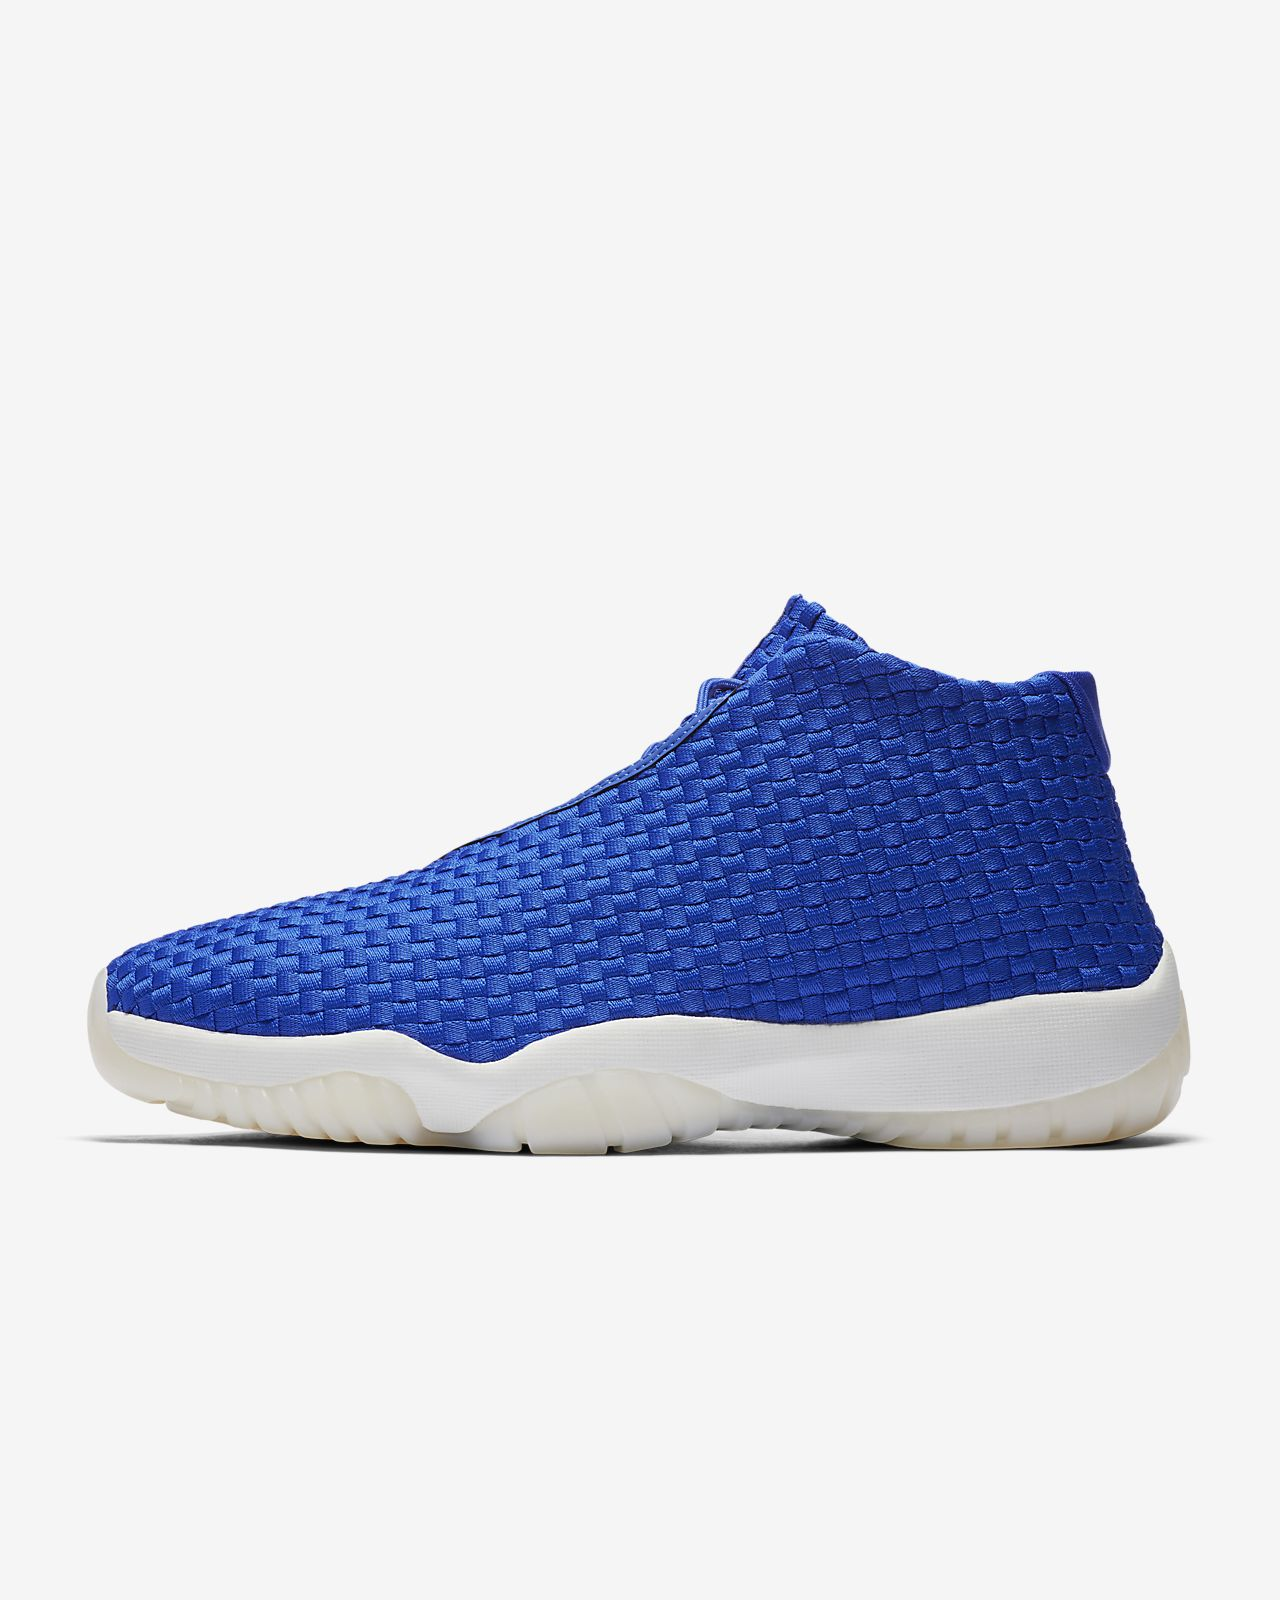 9a436eda5f87 Air Jordan Future Men s Shoe. Nike.com